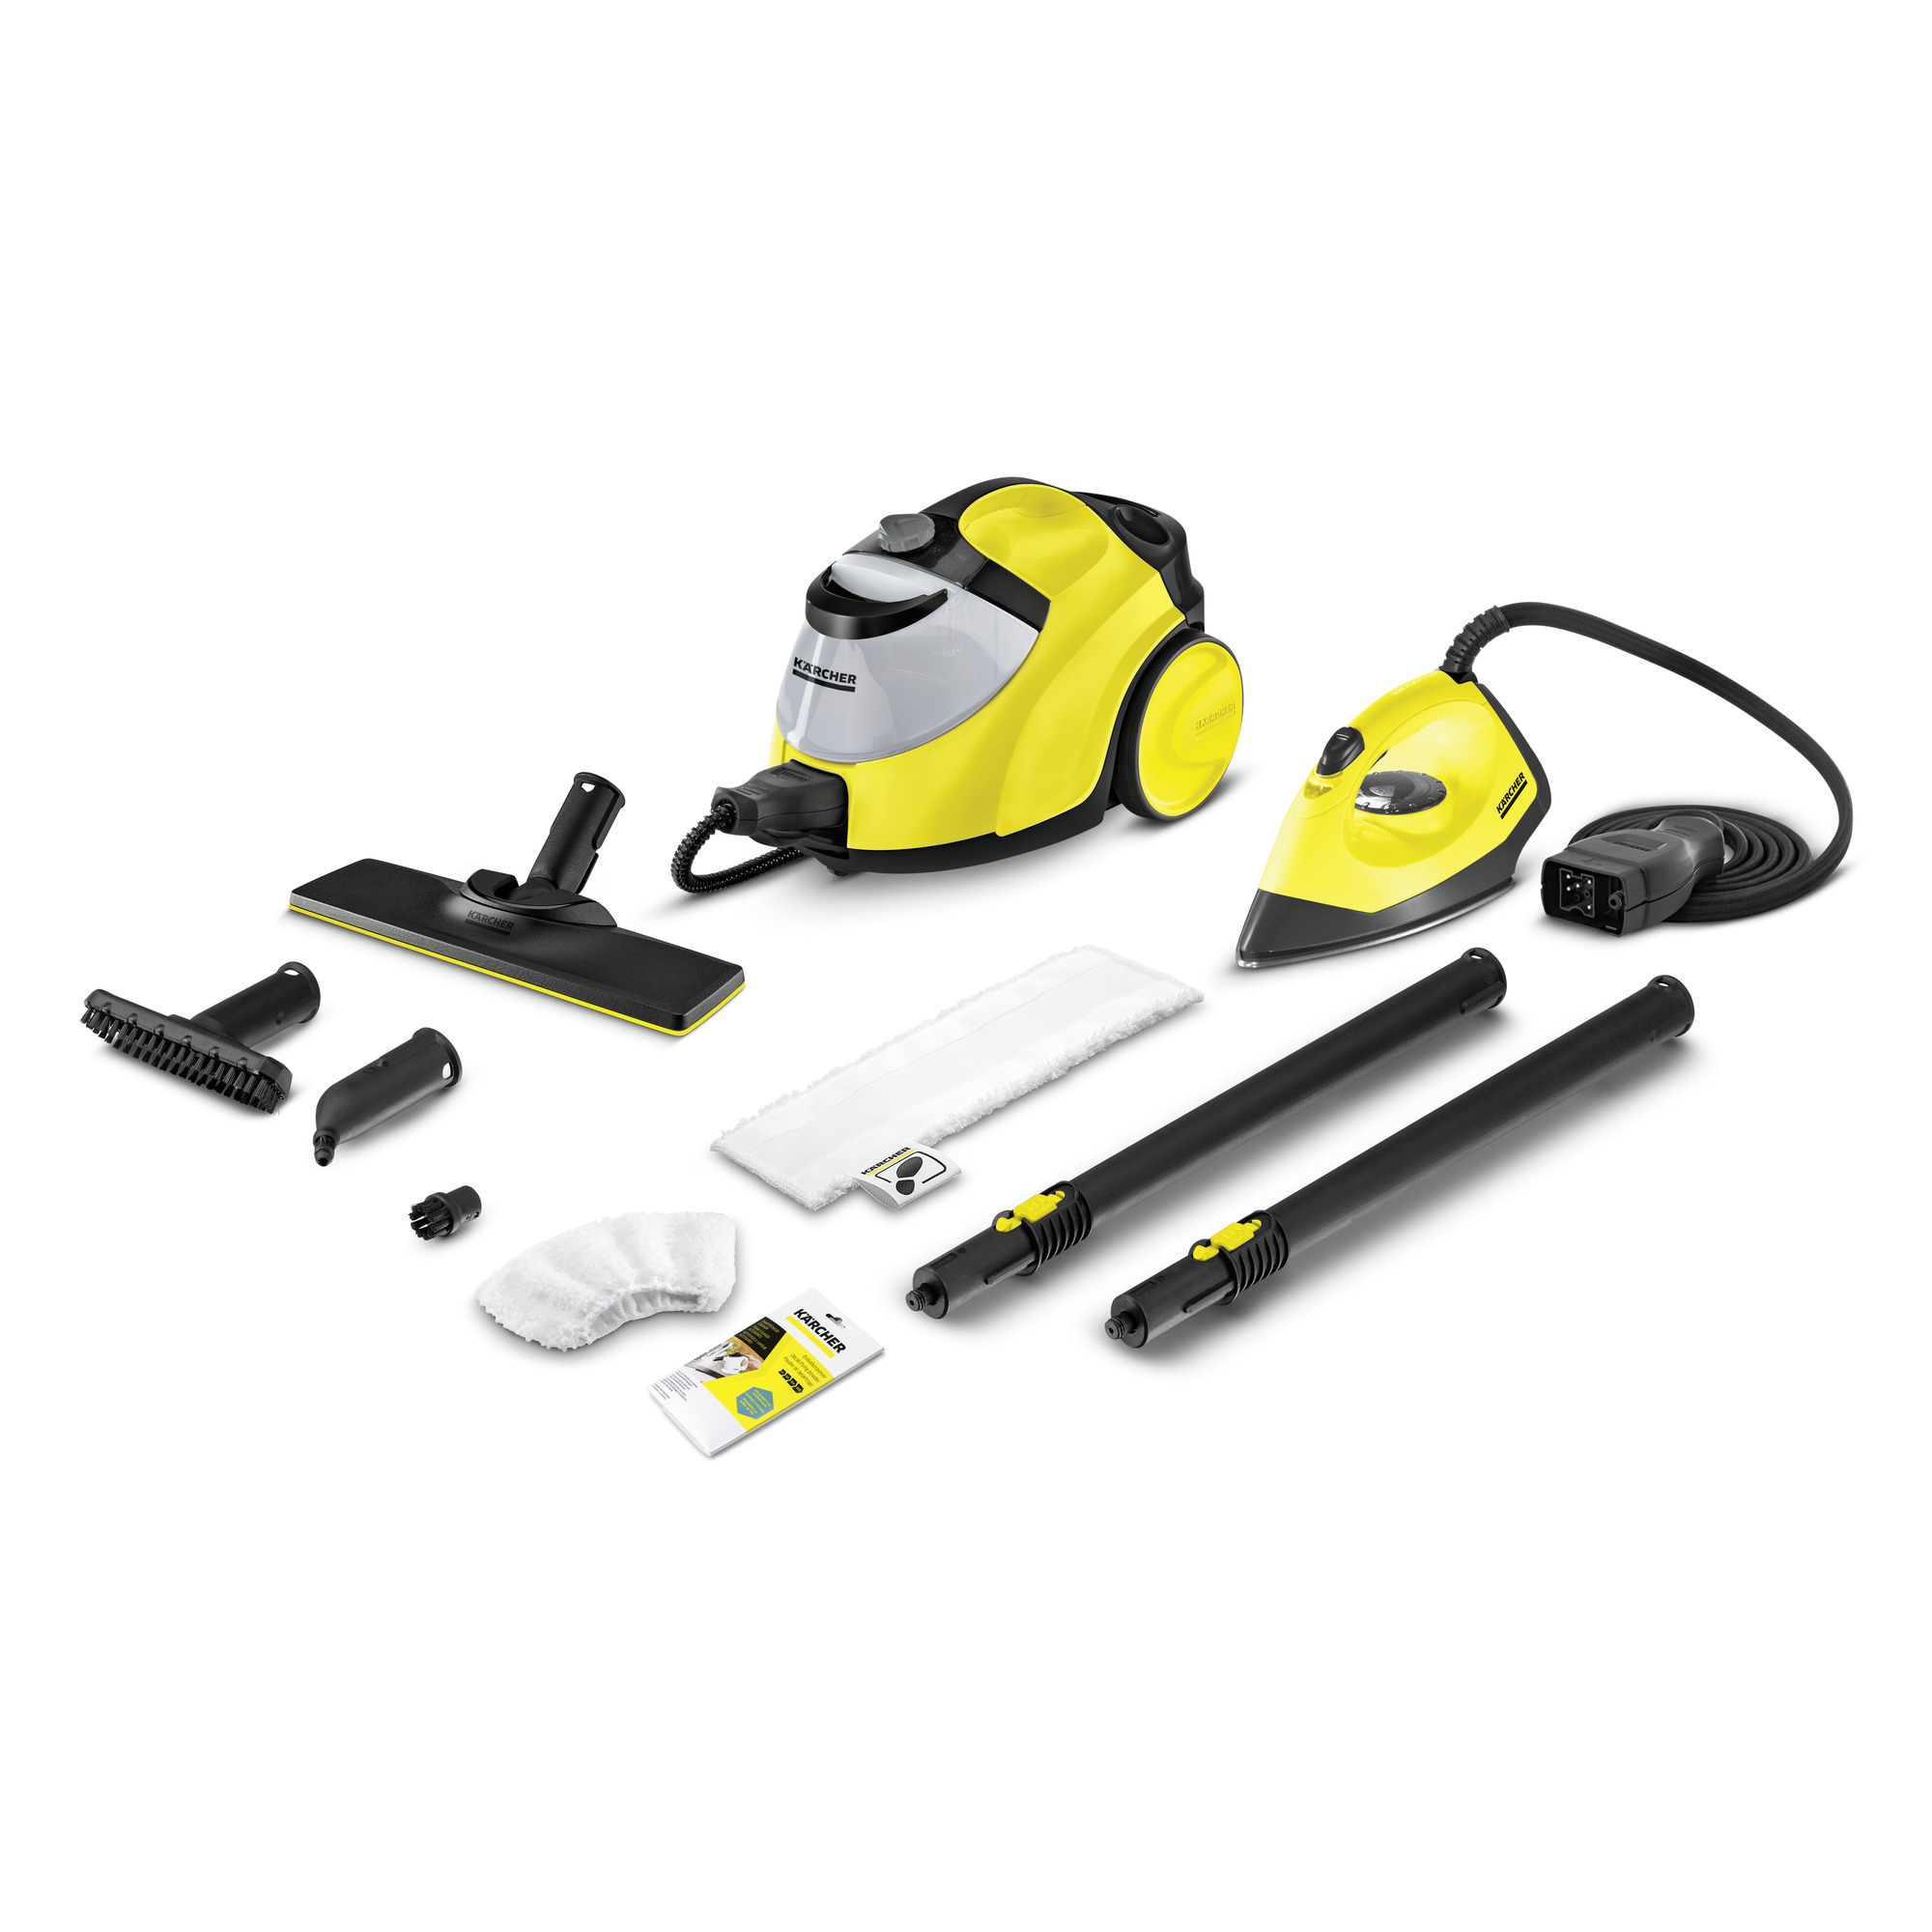 KARCHER SC 5 EasyFix Iron Kit 1.512-533.0